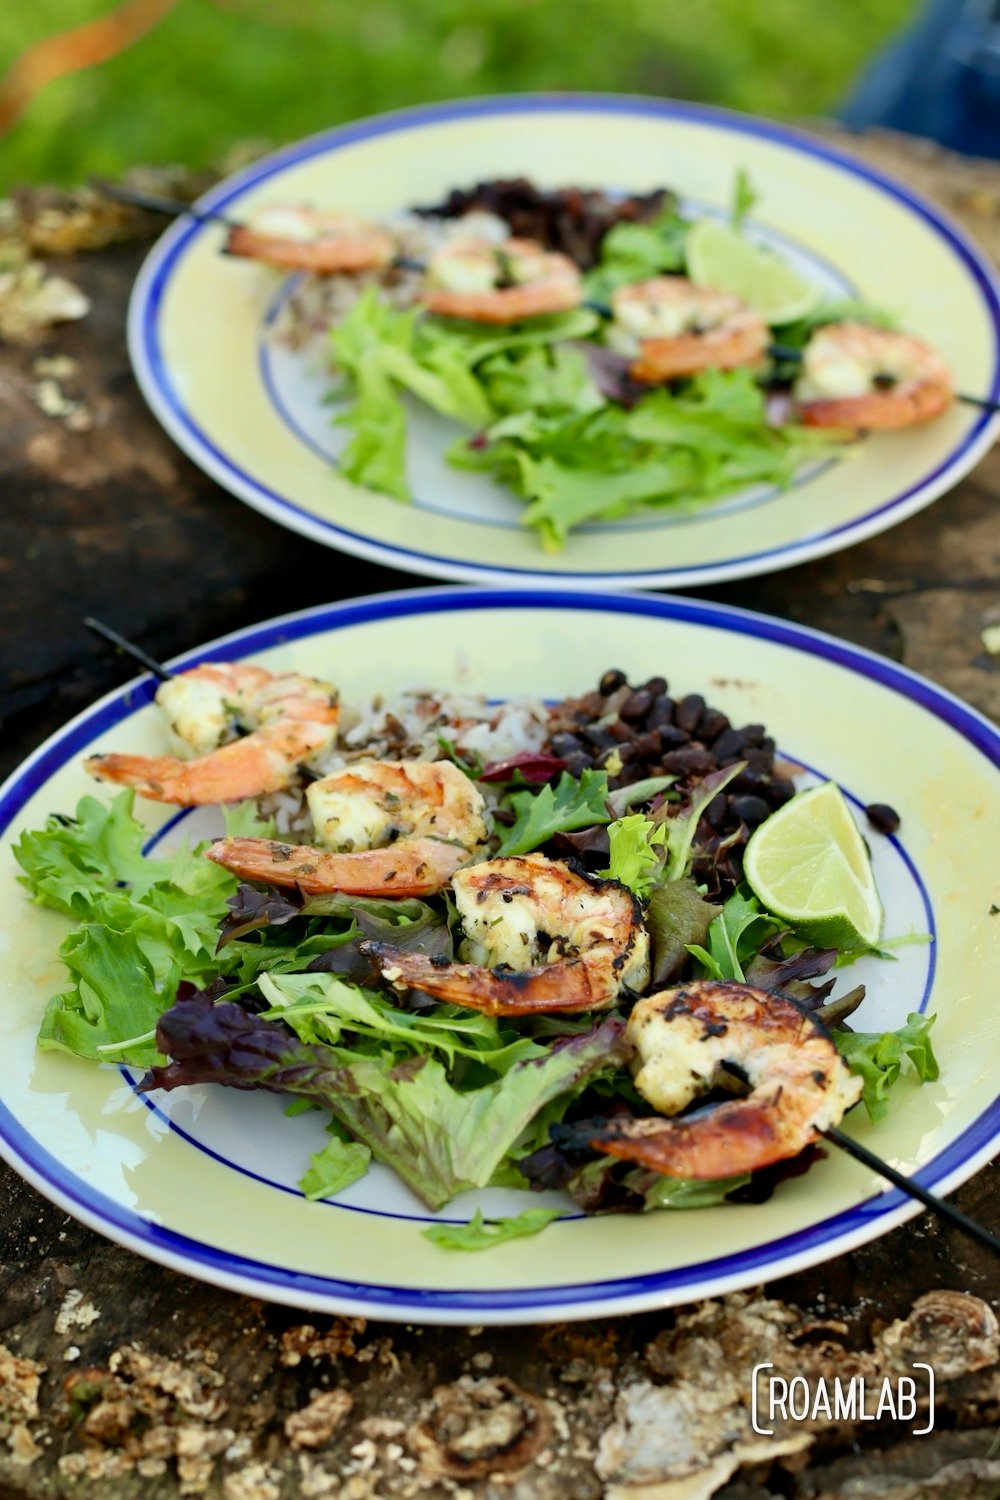 Mix a fresh marinade and up your seafood grilling game with this gourmet lemon herb shrimp skewers campfire cooking dinner recipe.